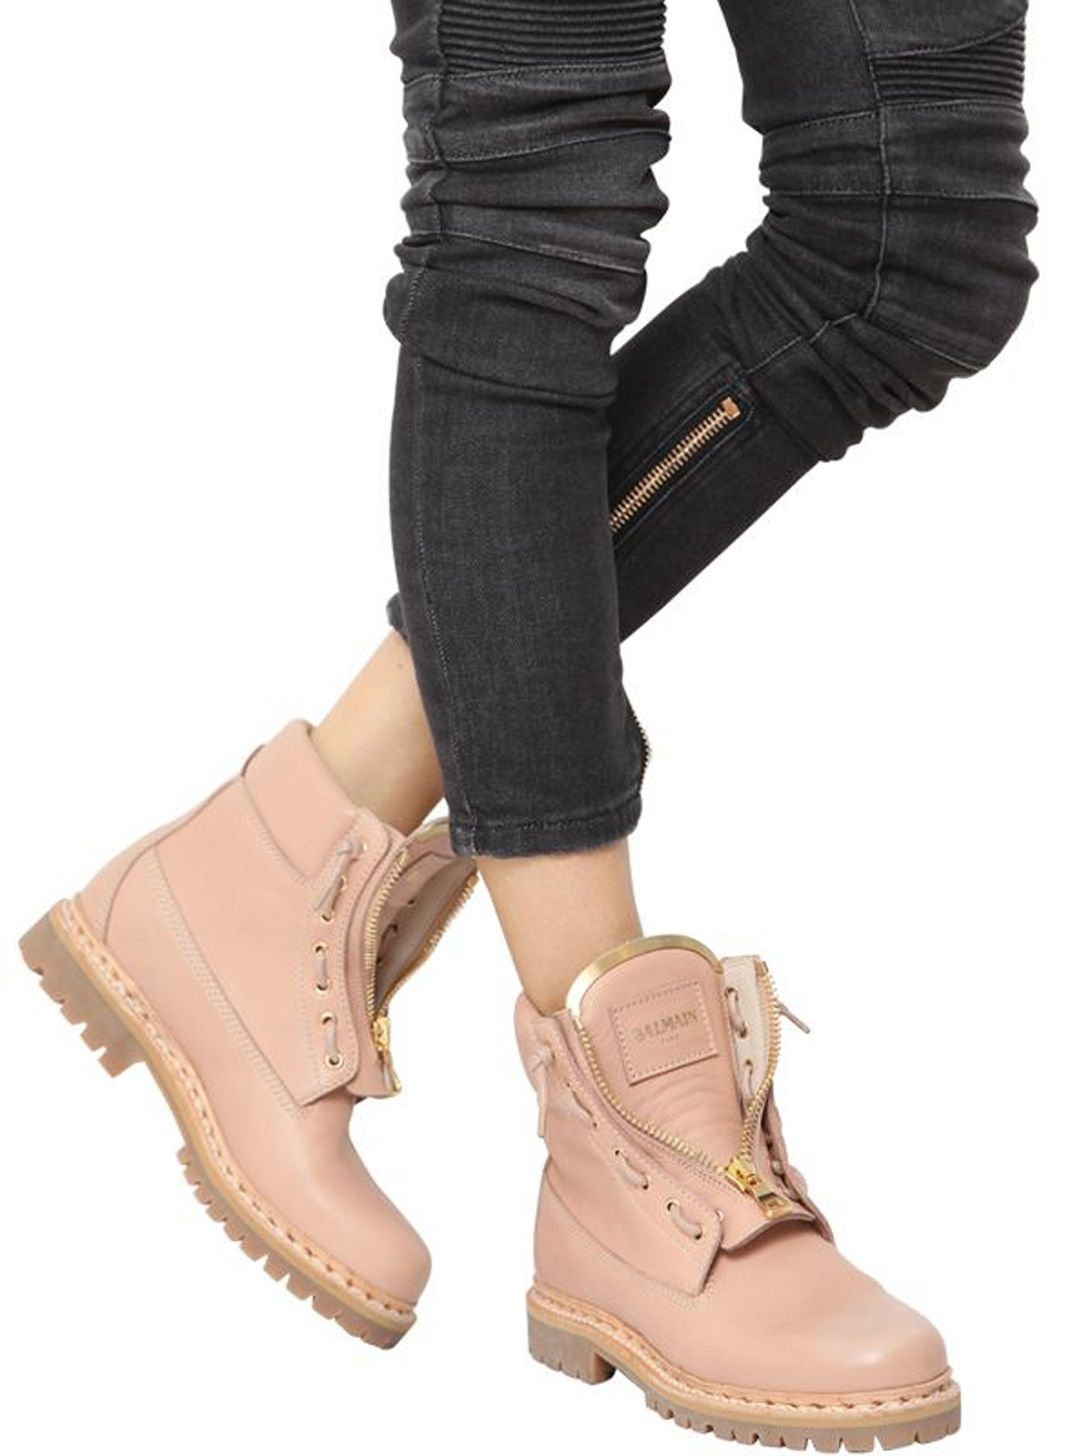 balmain nude taiga leather boots